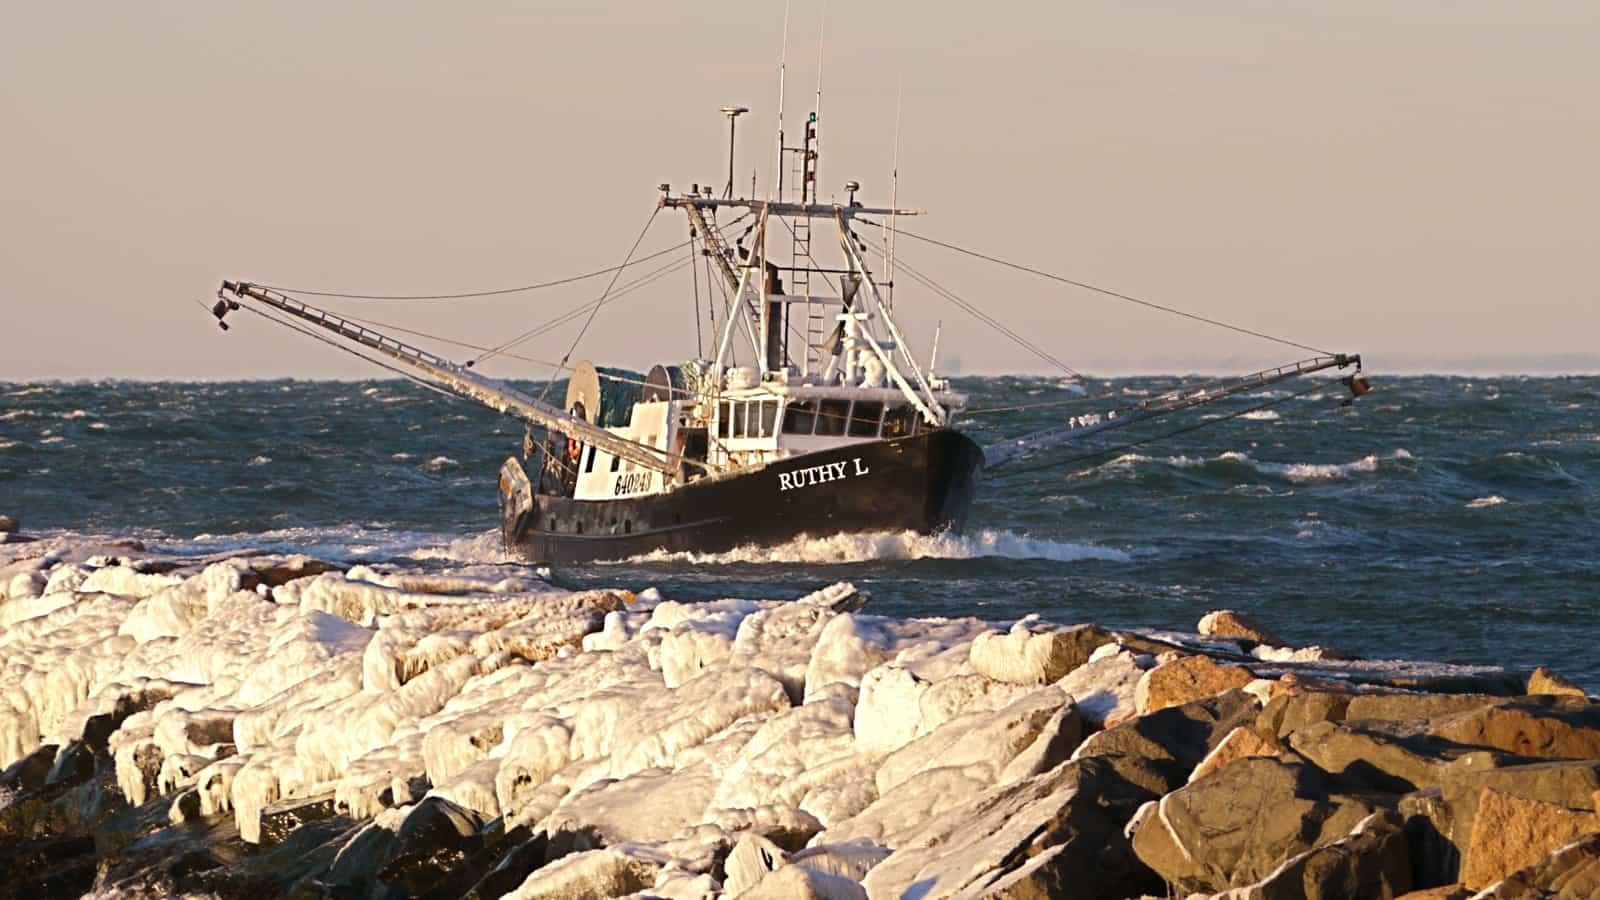 The trawler Ruthy L coming into Montauk Harbor on a bitterly cold January day. Ice on the jetty in the foreground.